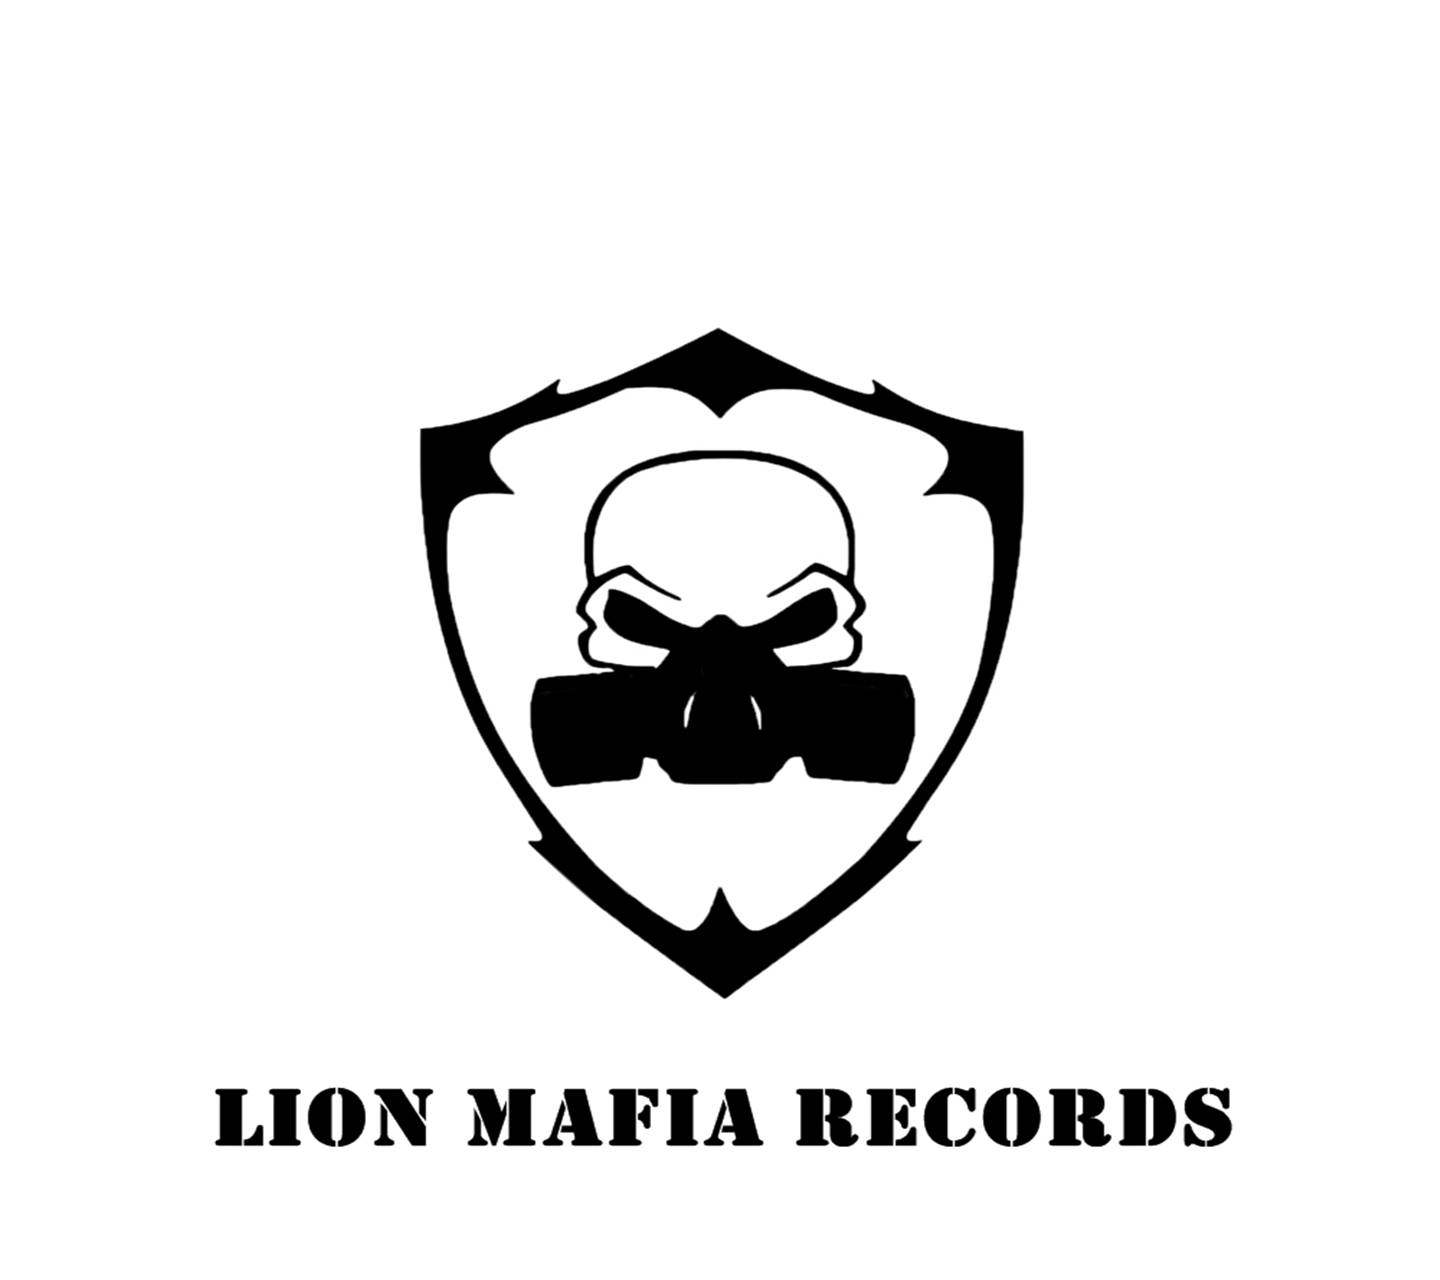 lion mafia records